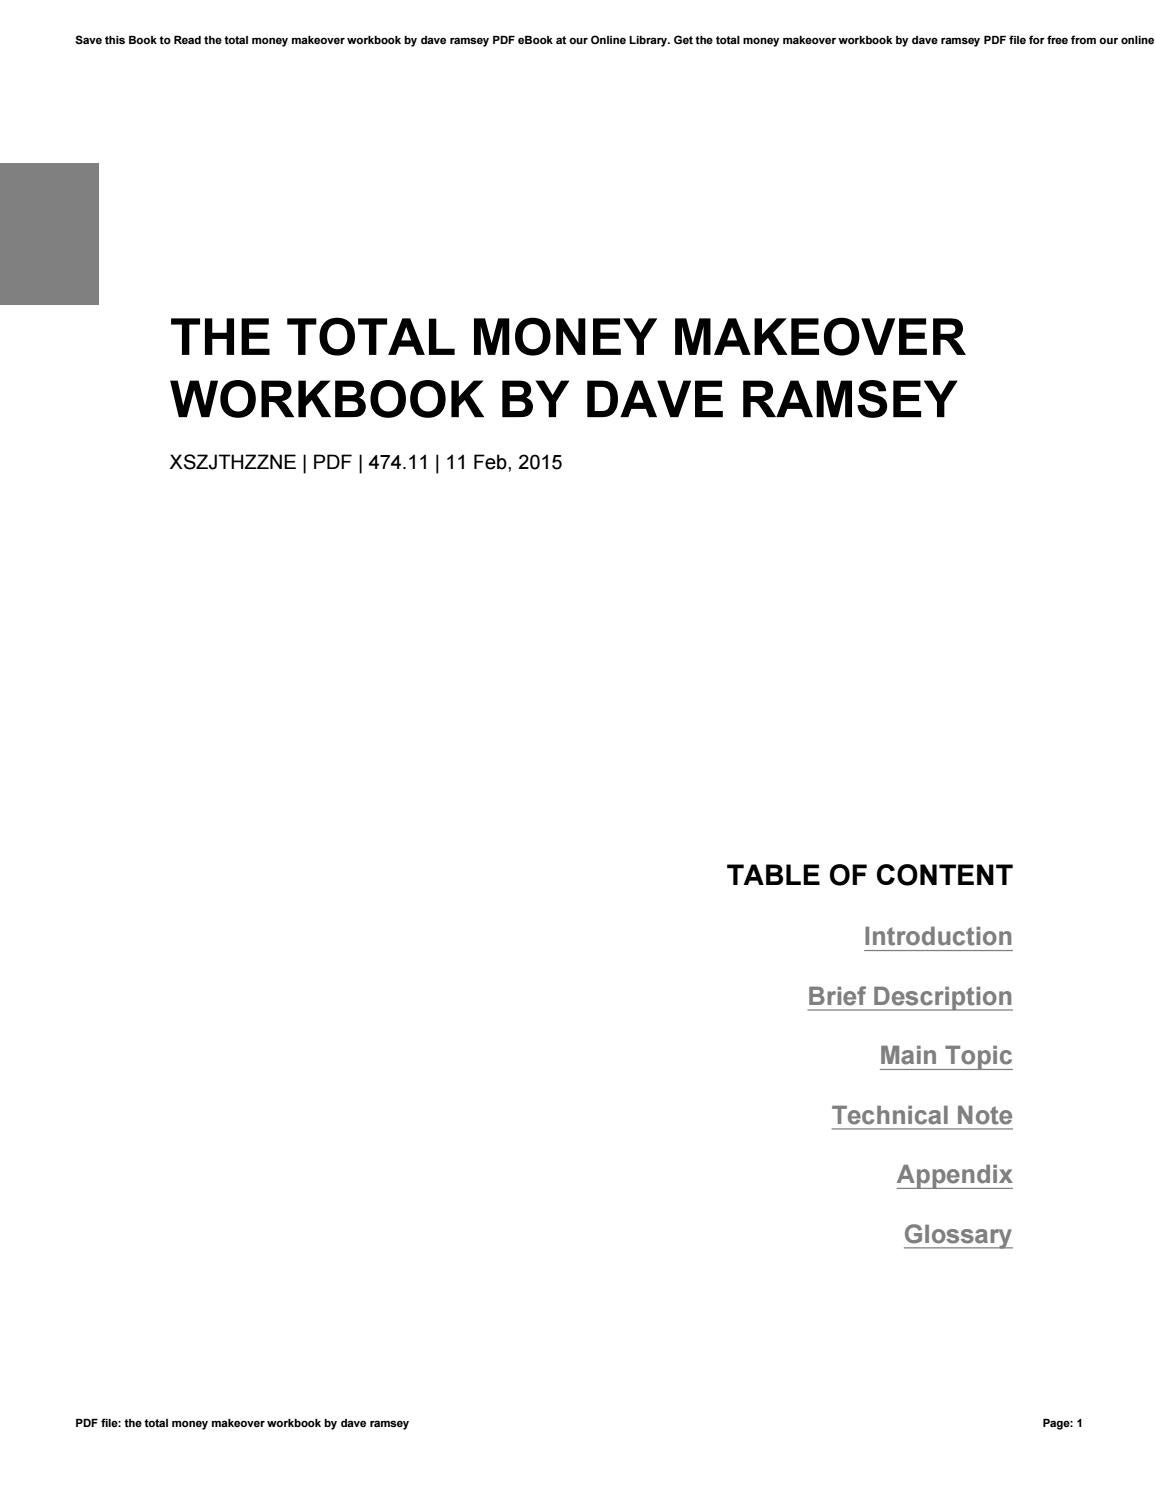 The total money makeover workbook by dave ramsey by ...